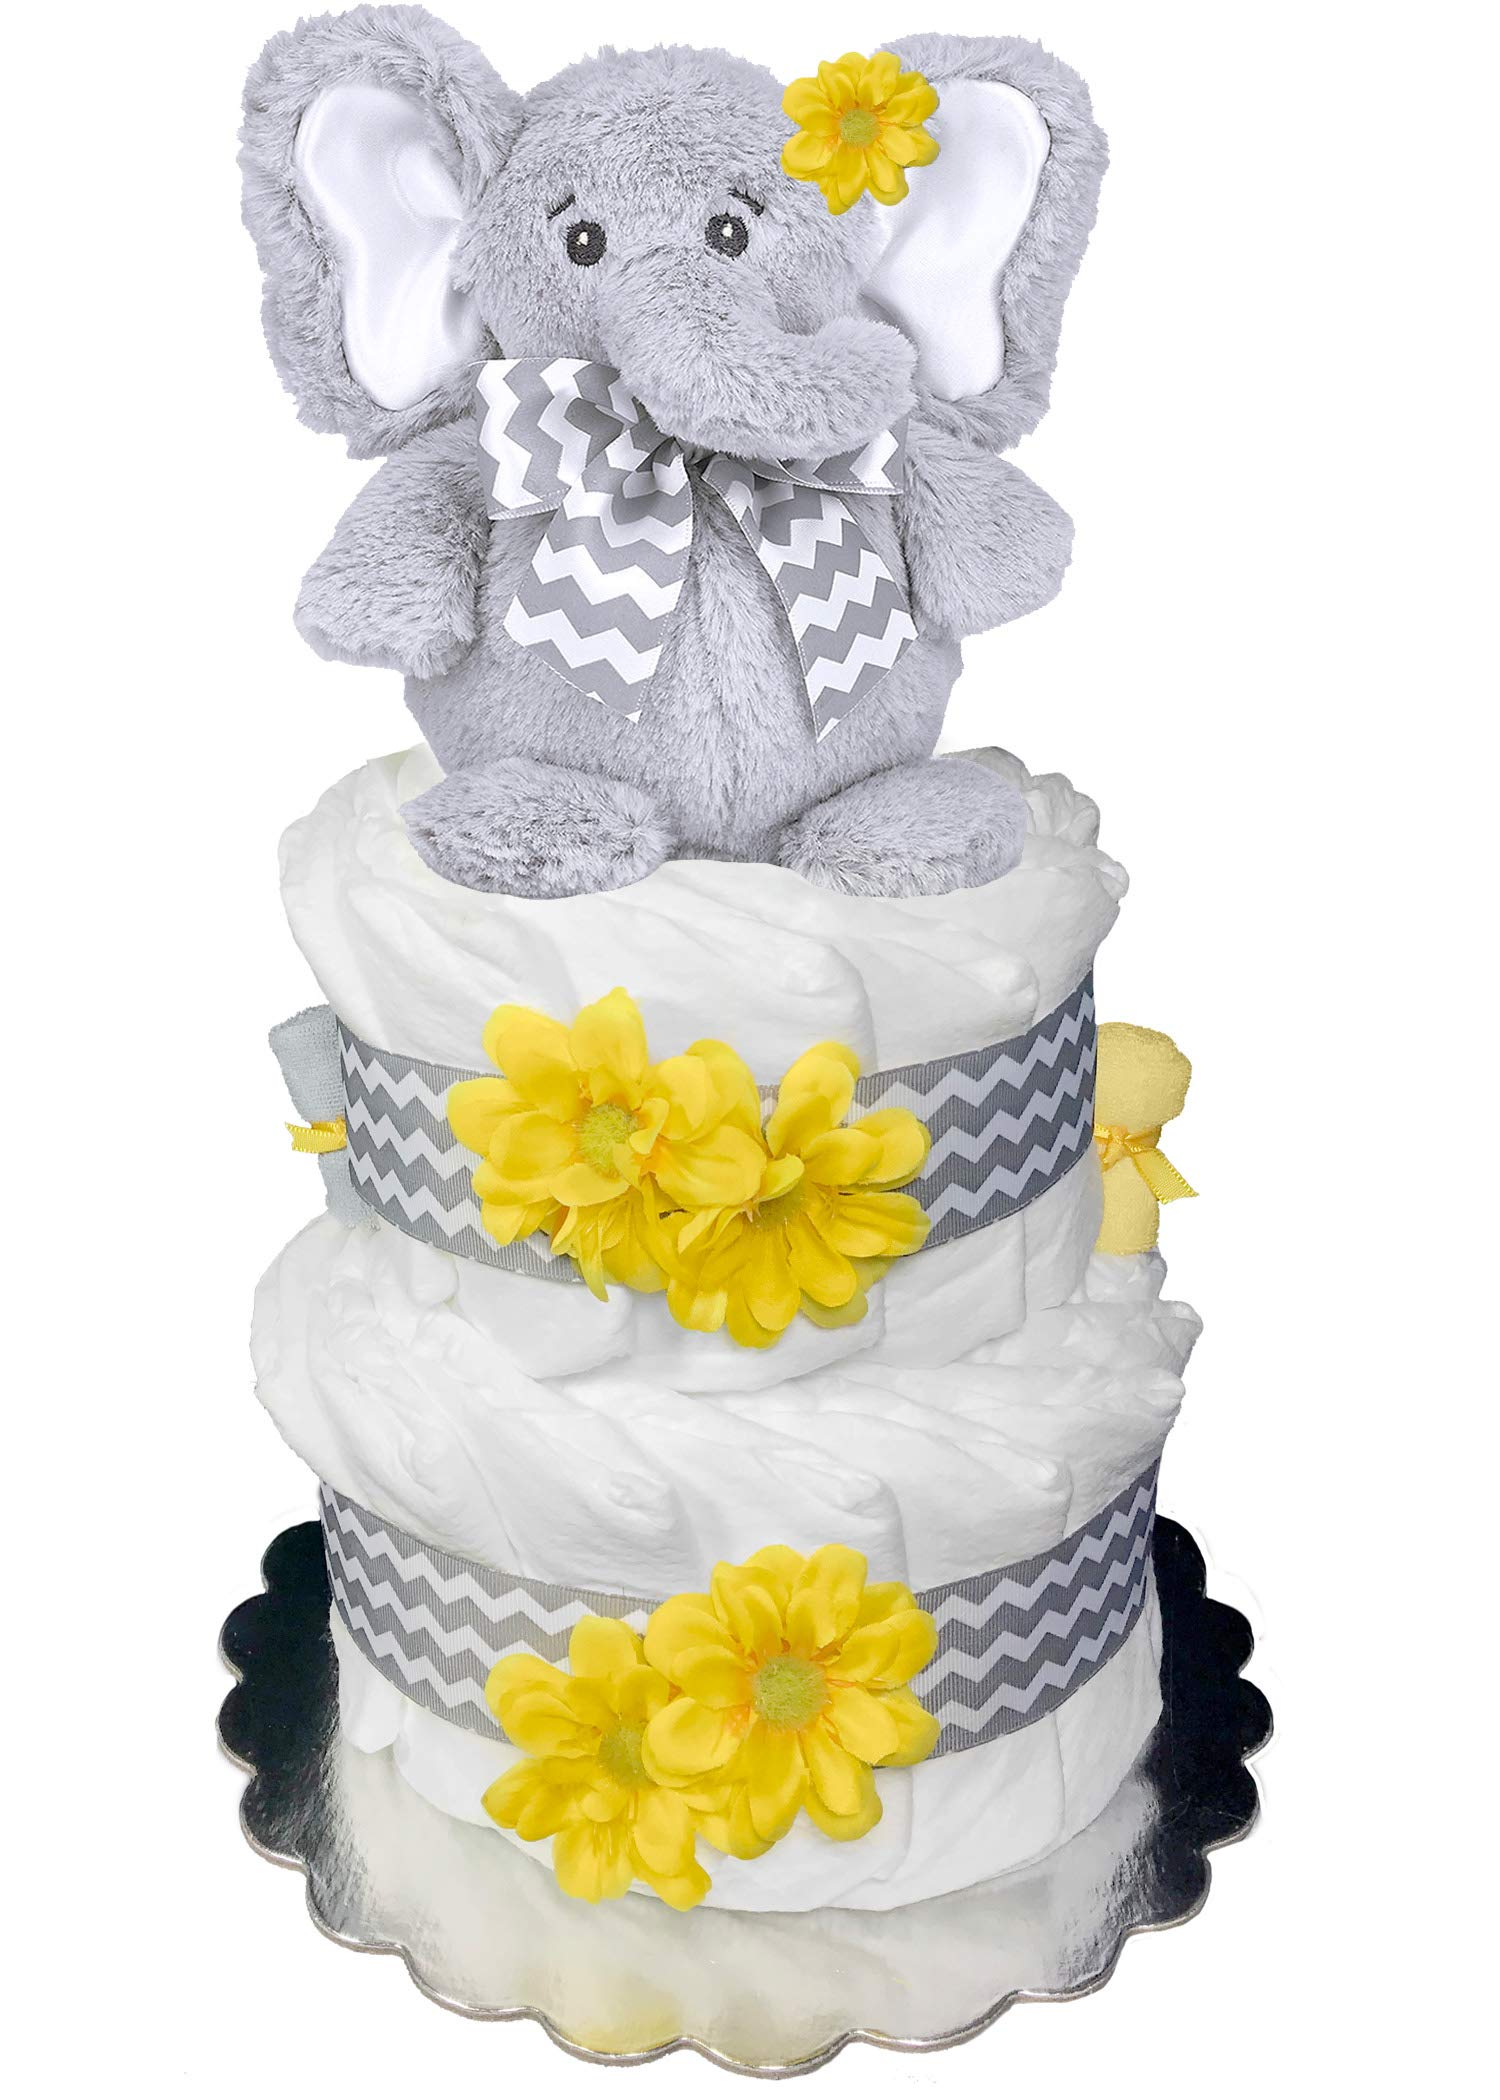 Elephant Diaper Cake - Baby Shower Gift - Centerpiece - Yellow and Gray